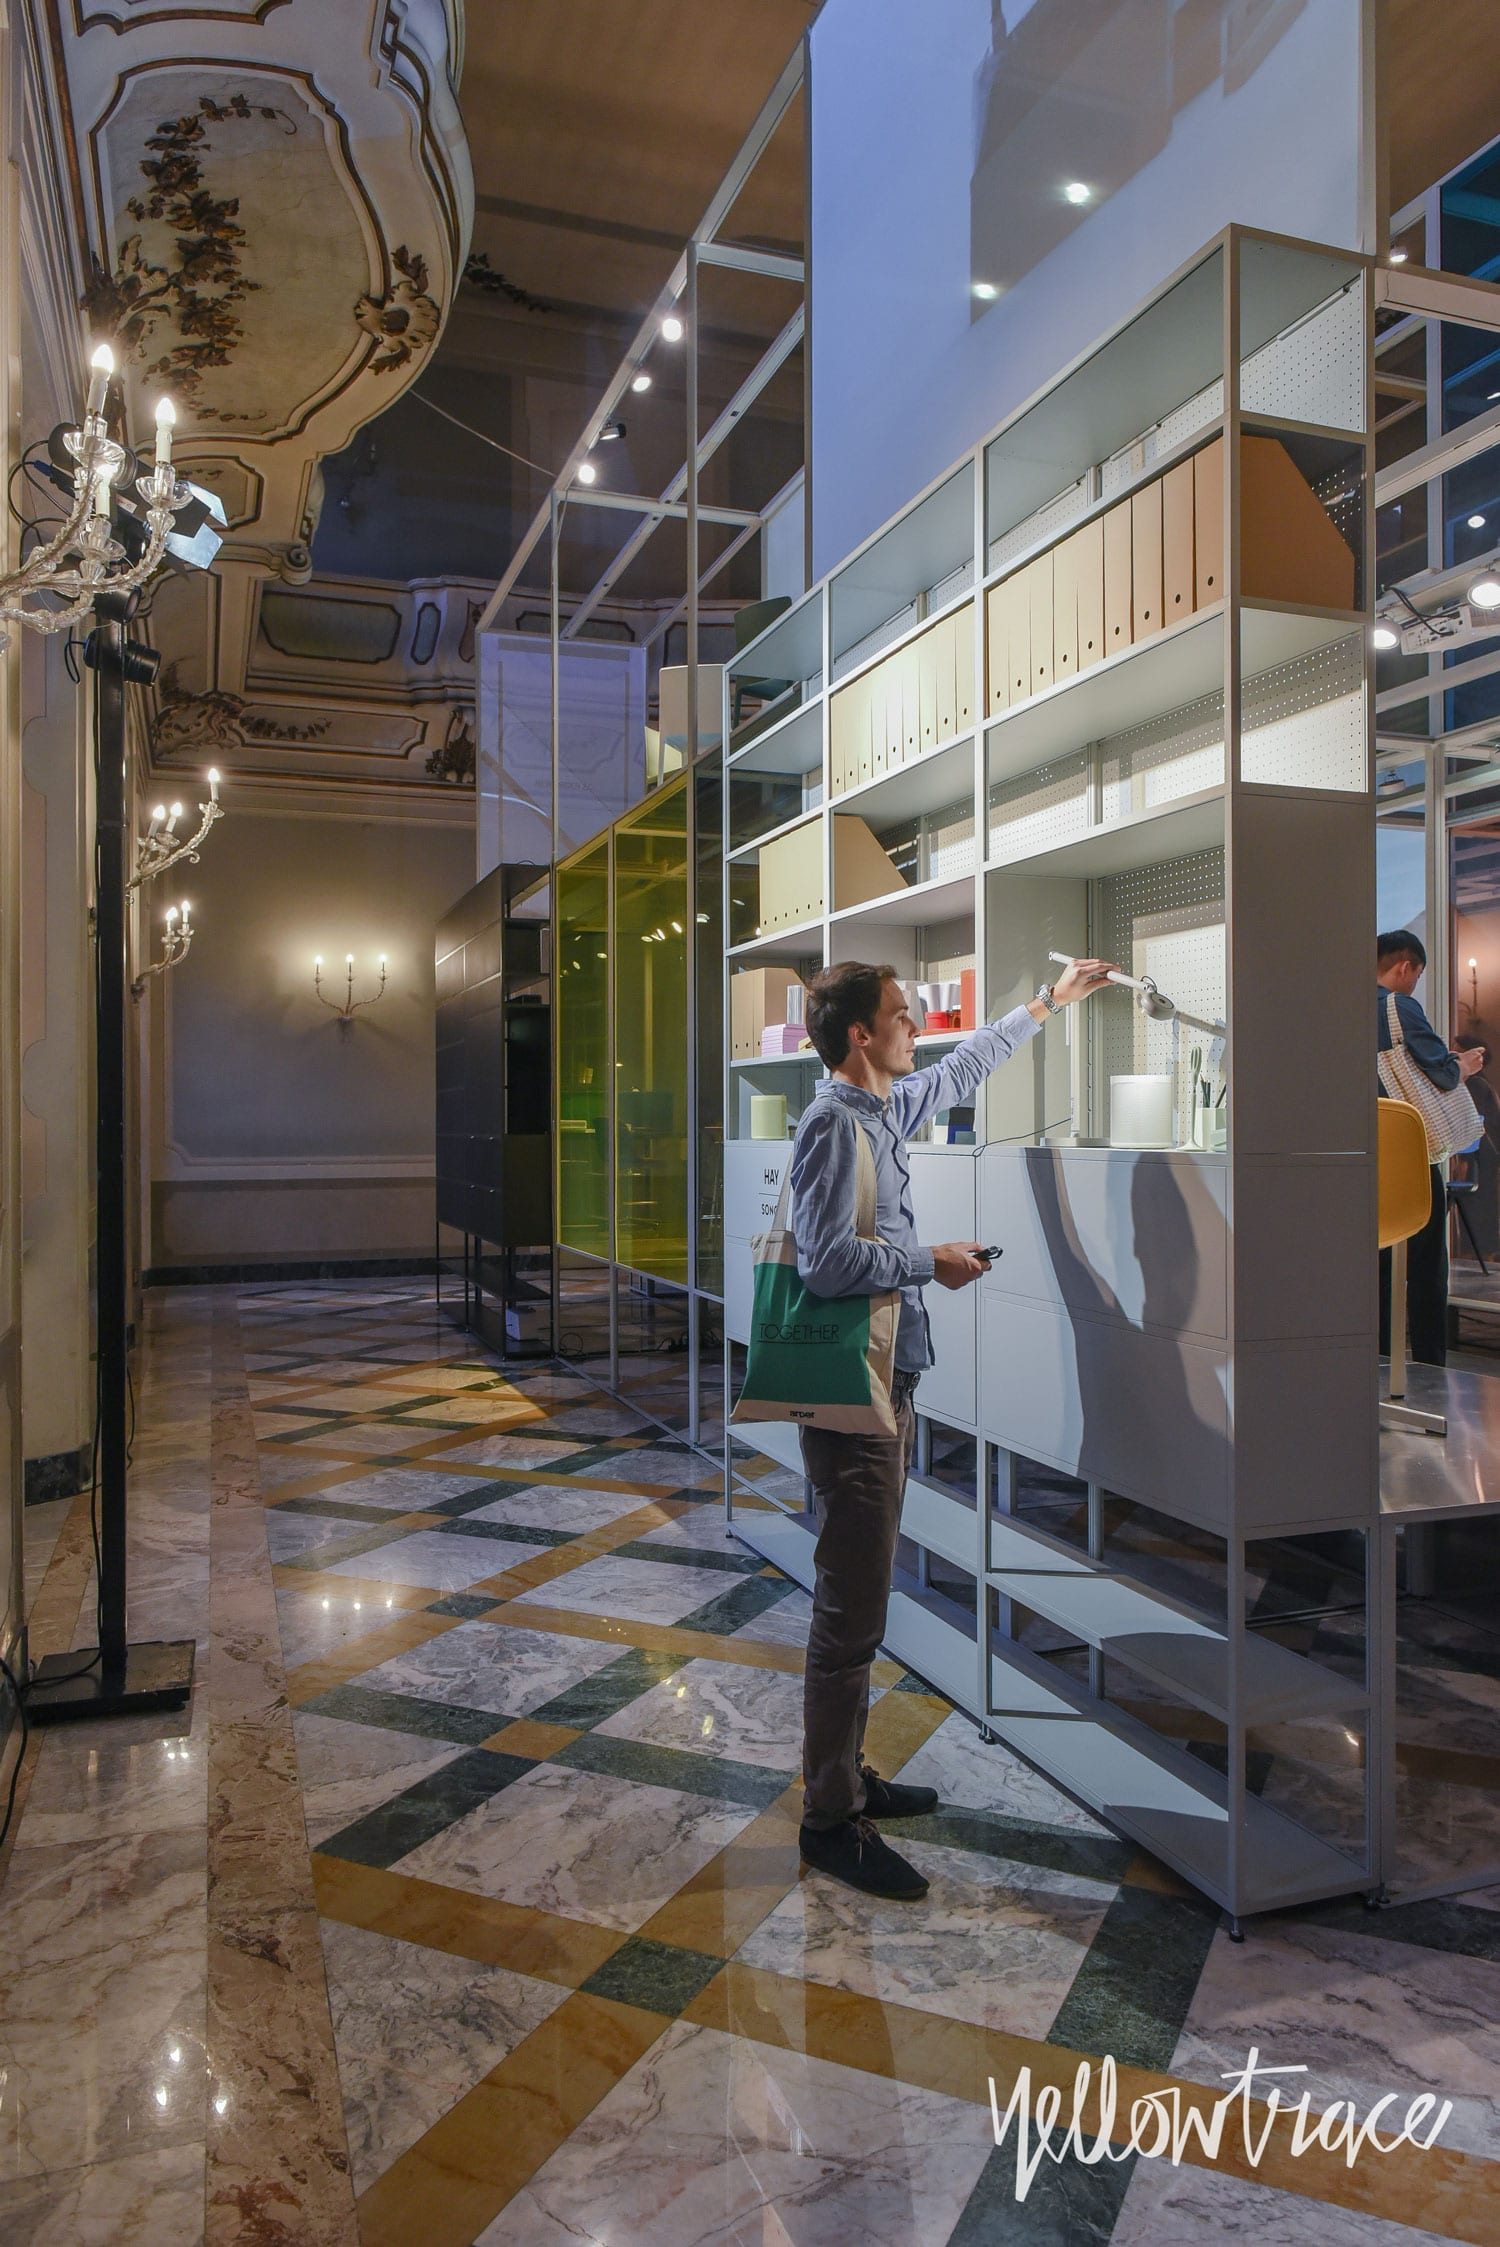 Milan Design Week 2018 Highlights, HAY x SONOS x WeWork installation at Palazzo Clerici. Photo © Nick Hughes | #Milantrace2018